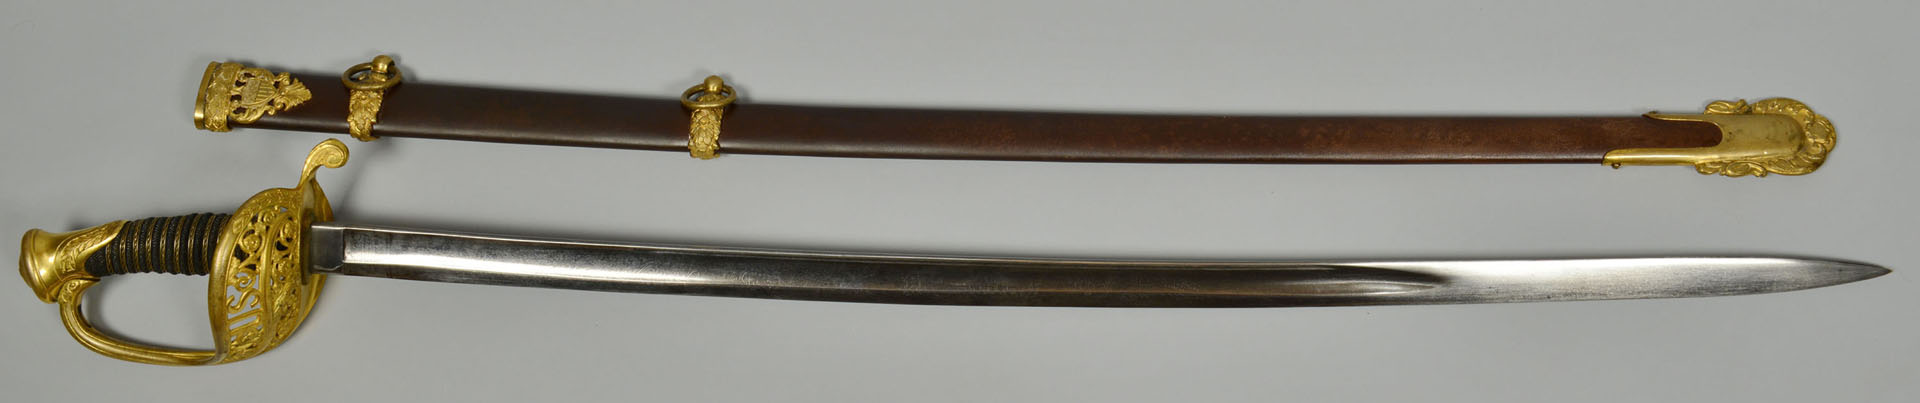 Ames M1850 Staff and Field Officers Sword